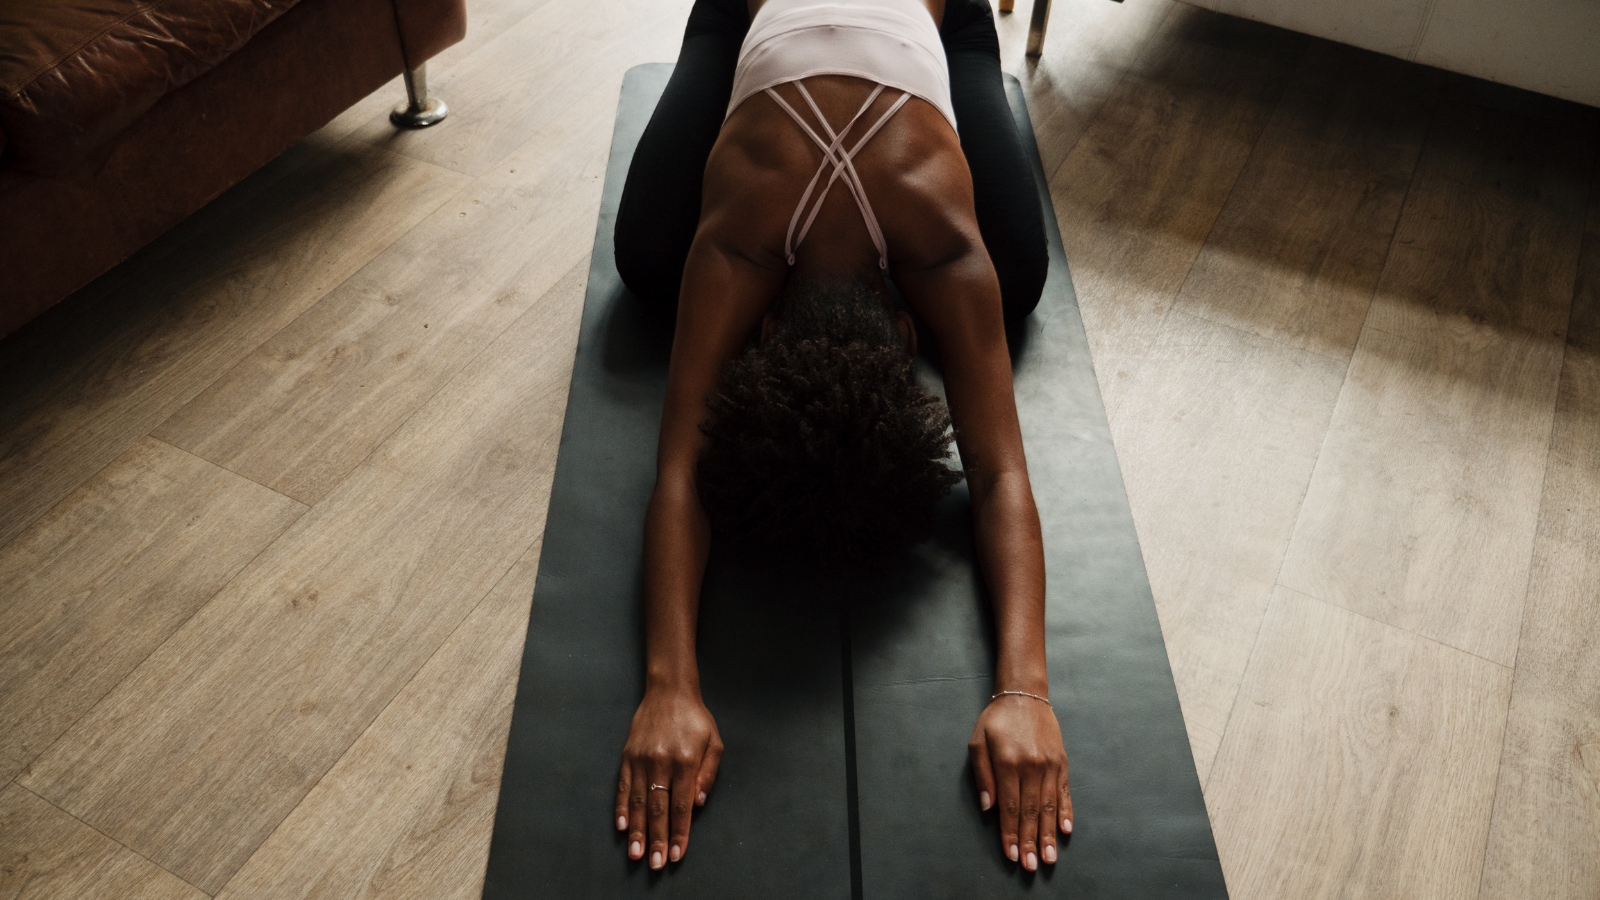 Yoga wellness tips to learn how to surrender in the face of life's challenges